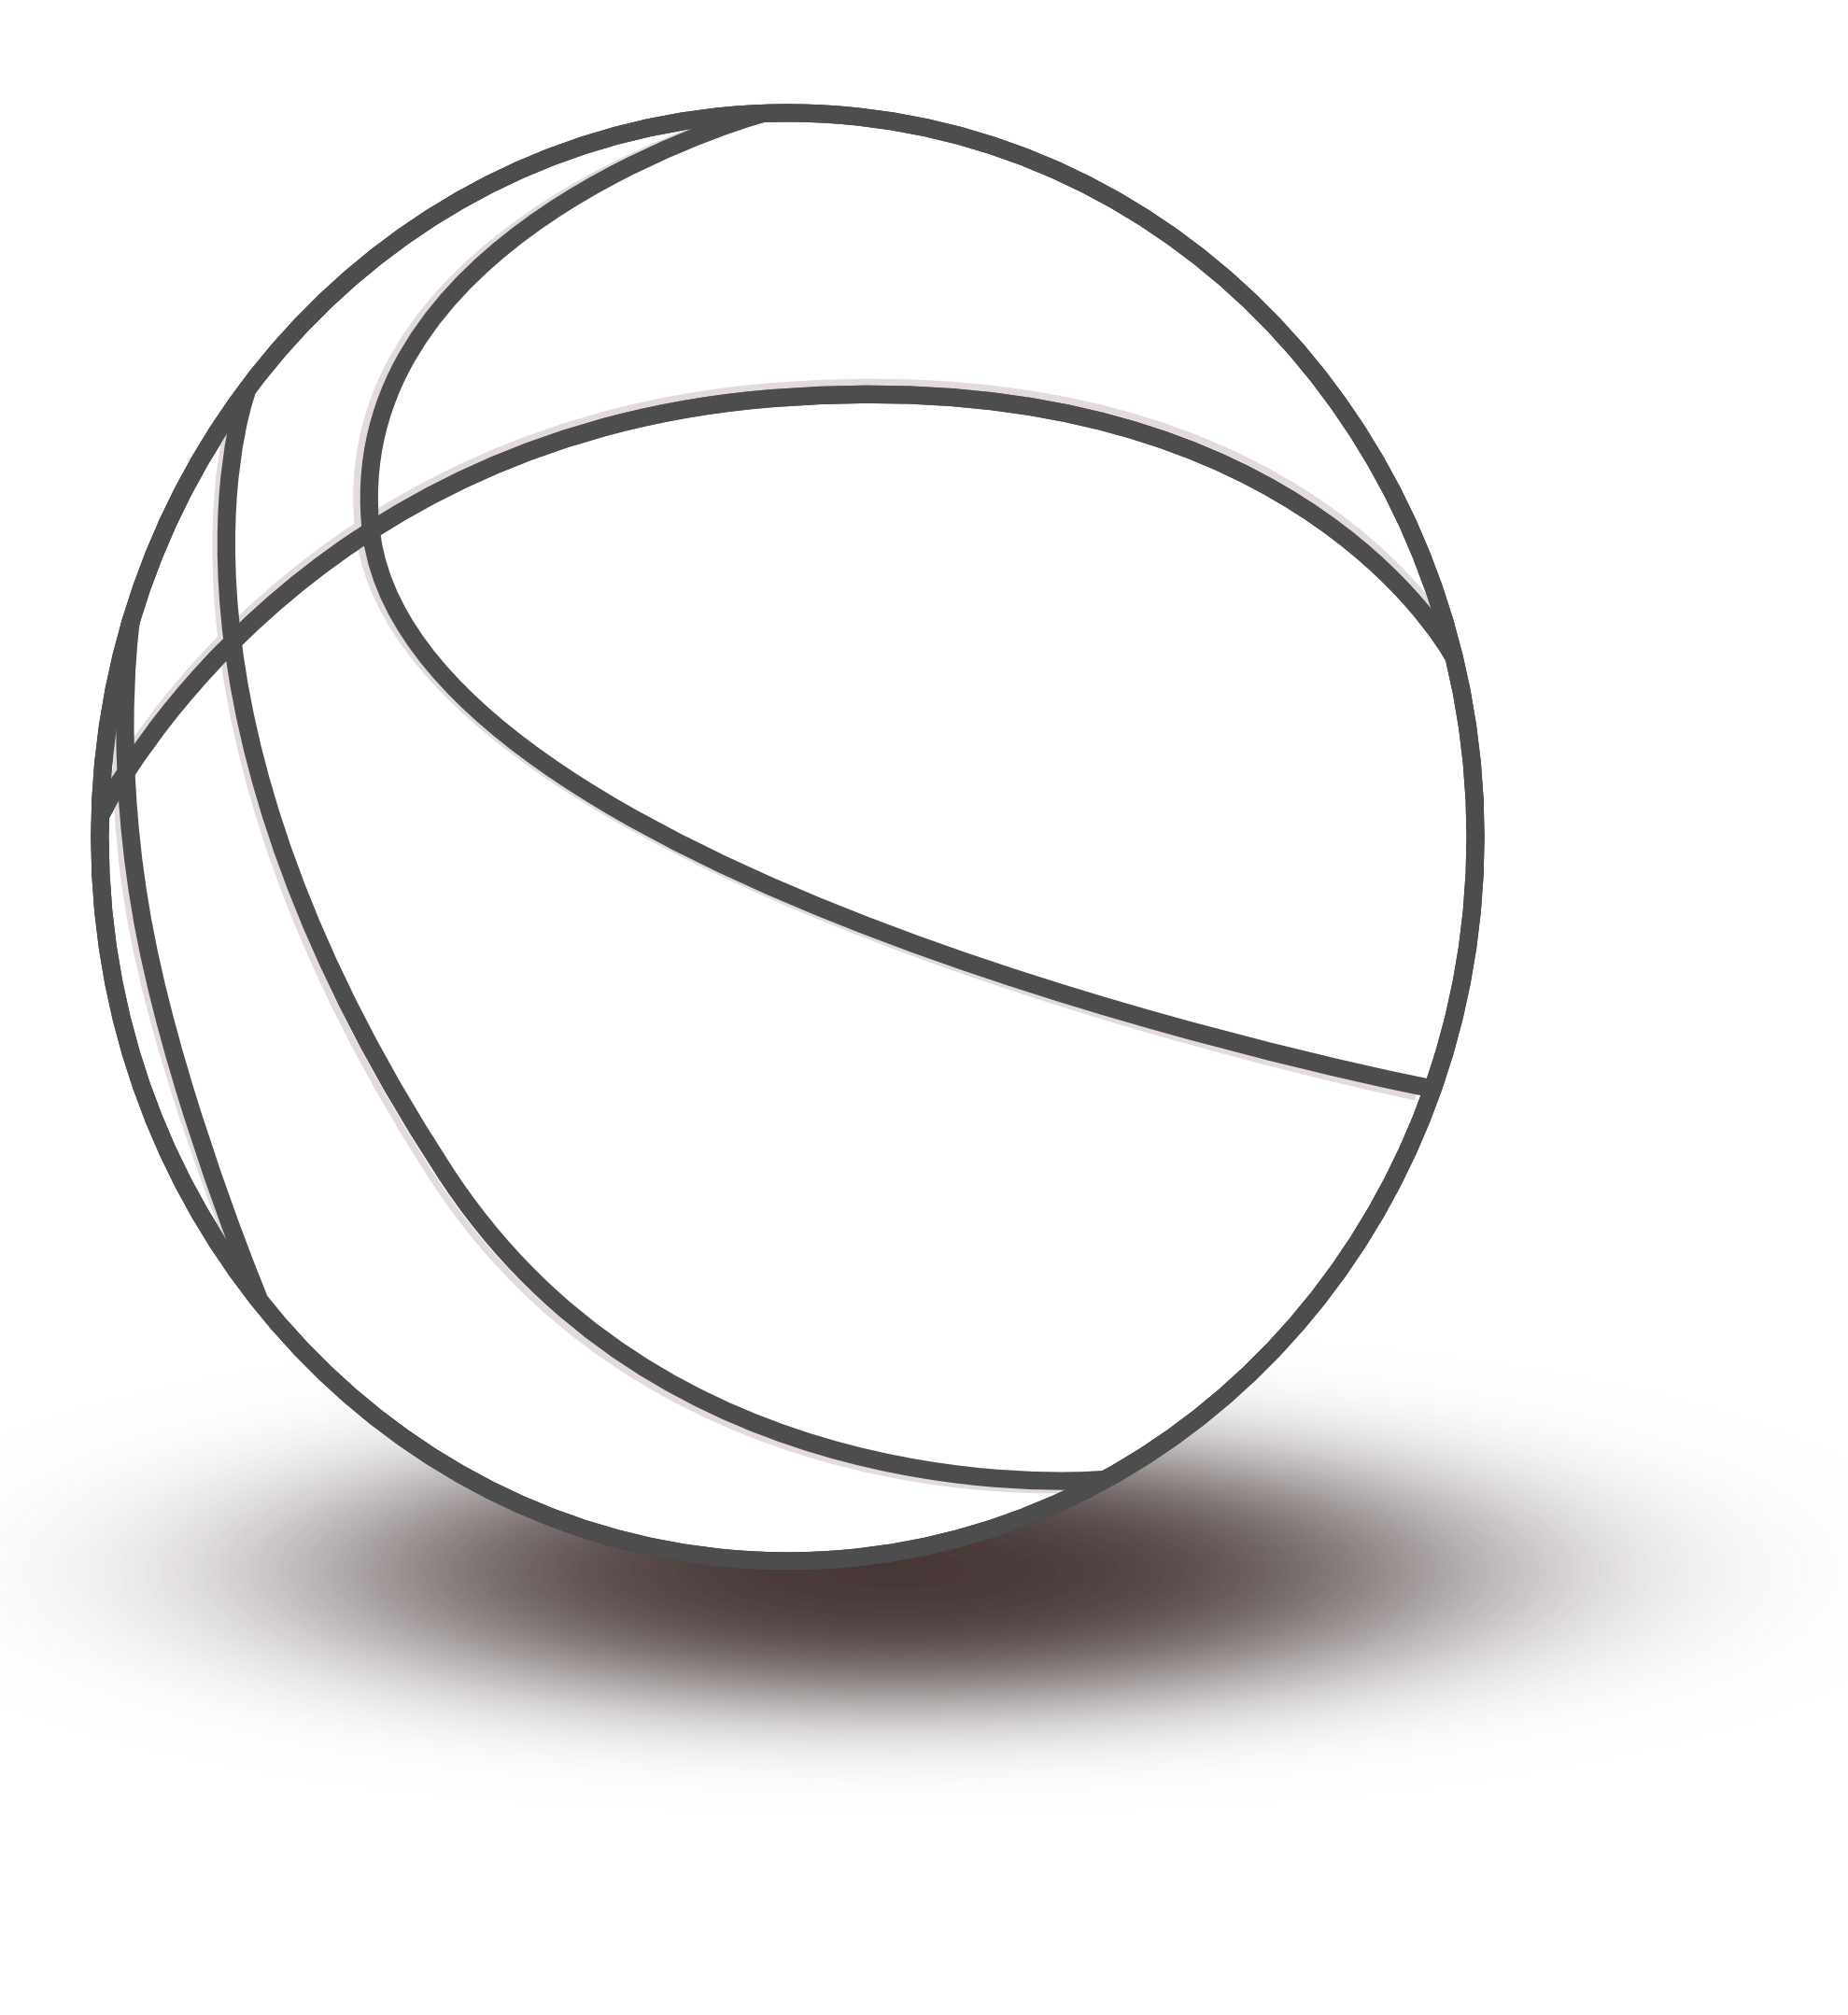 Clipart shield basketball. Black and white panda